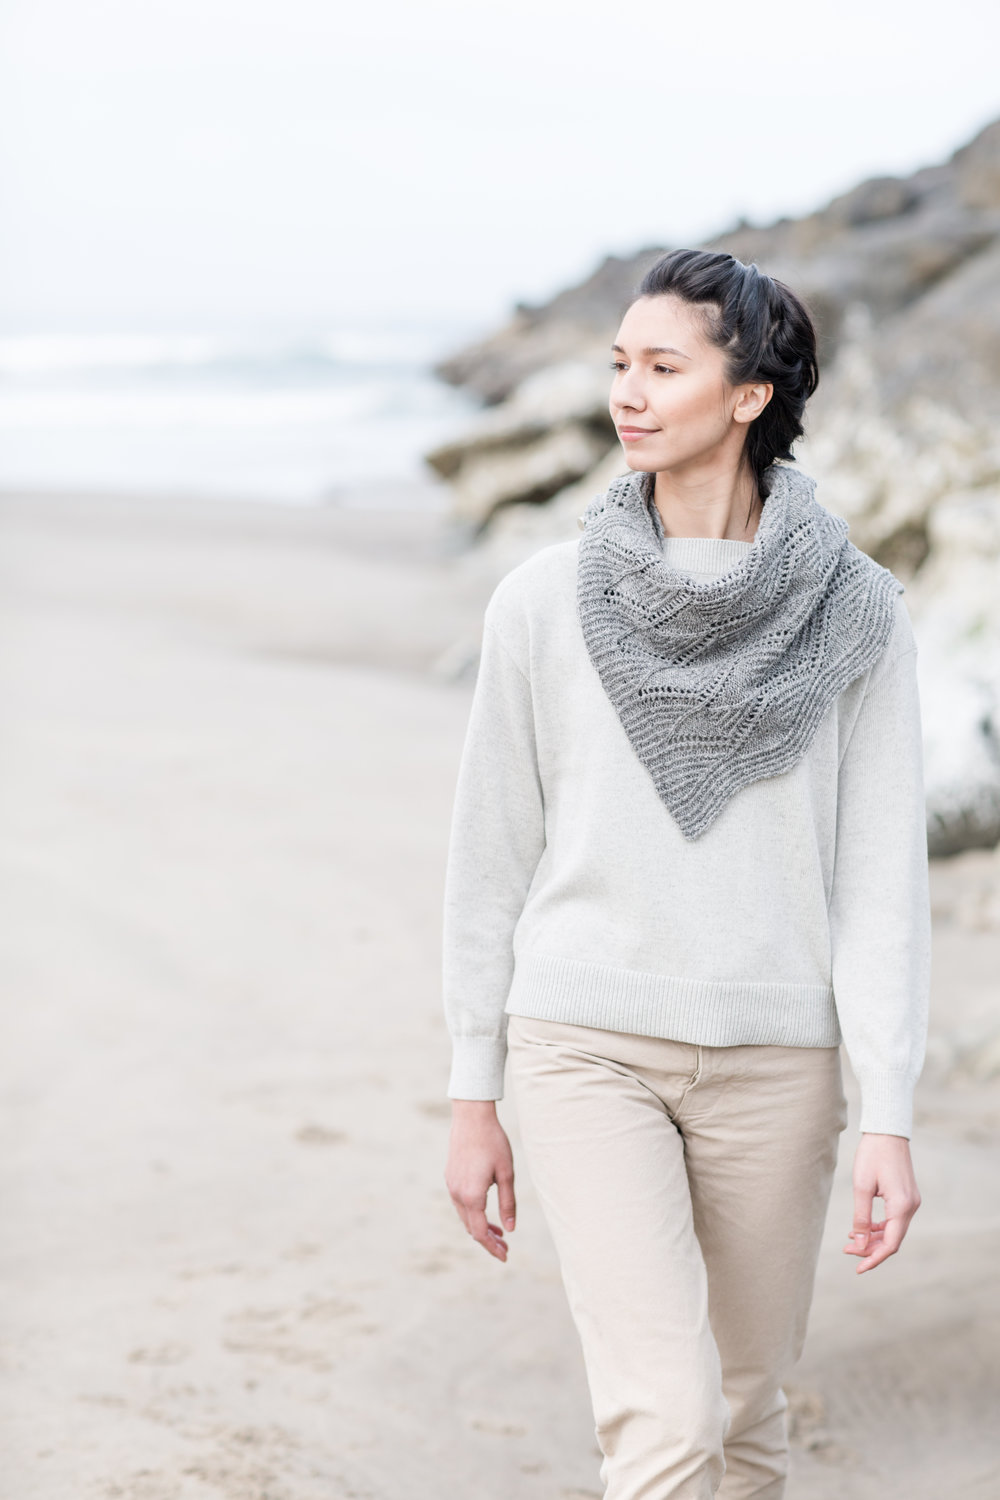 RIVULET by Shannon Cook for Wool People 12 #rivuletwrap #woolpeople12